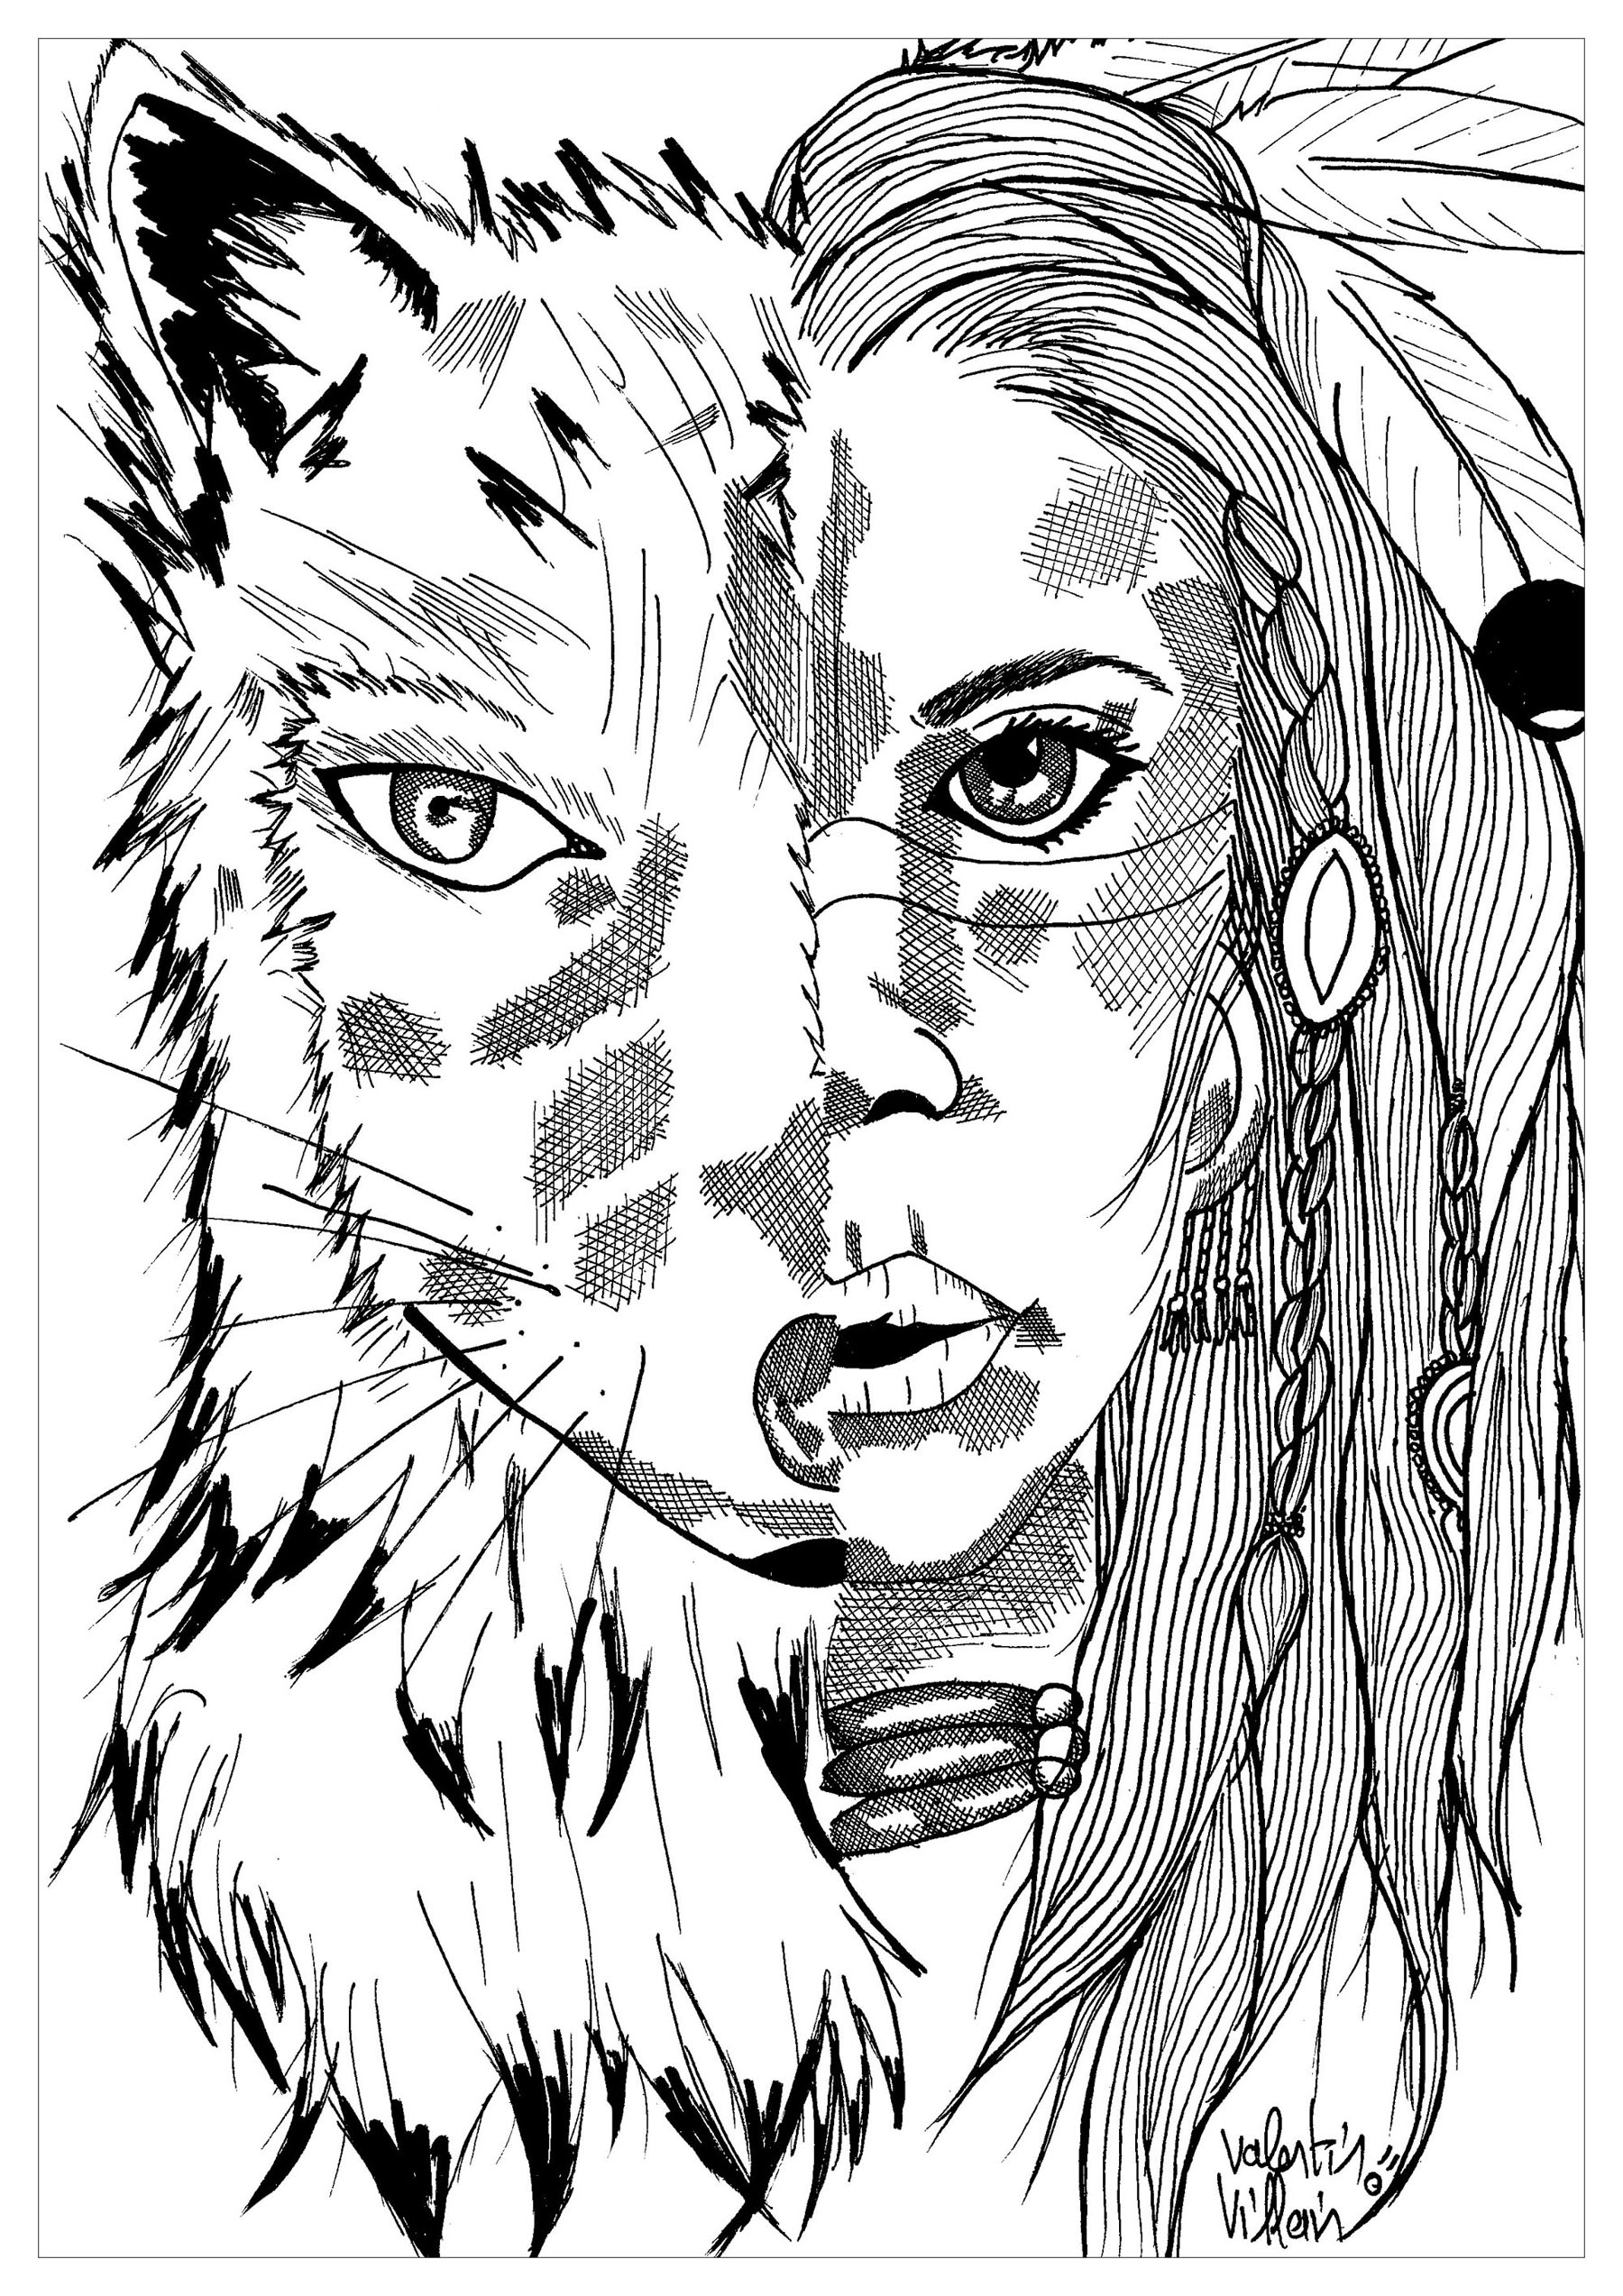 coloring of an indian and a wolf from the gallery native americans artist - Native American Coloring Pages